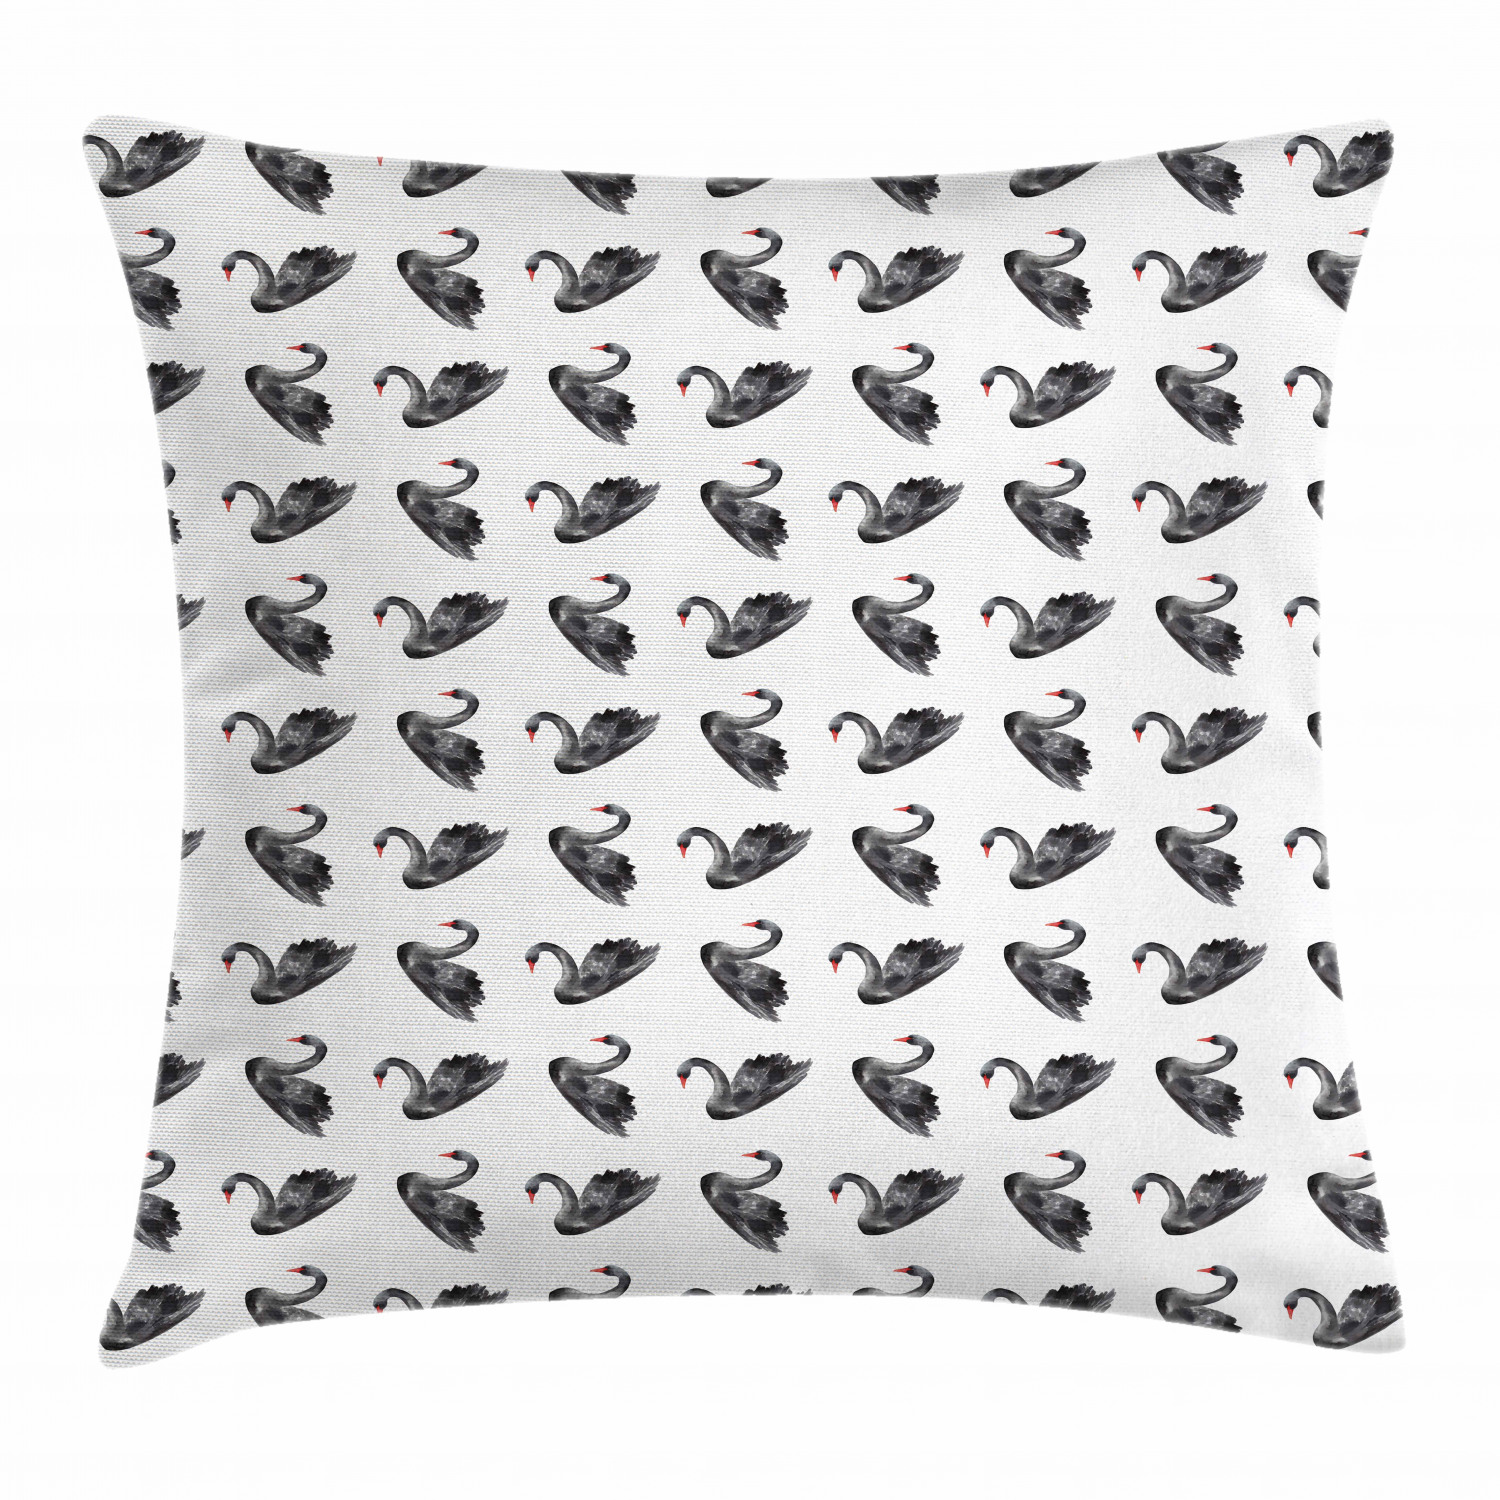 Swan Throw Pillow Cushion Cover Black Swan Aquarelle Illustration Symbols Of Peaceful Nature And Purity Decorative Square Accent Pillow Case 16 X 16 Inches Charcoal Grey White Red By Ambesonne Walmart Com